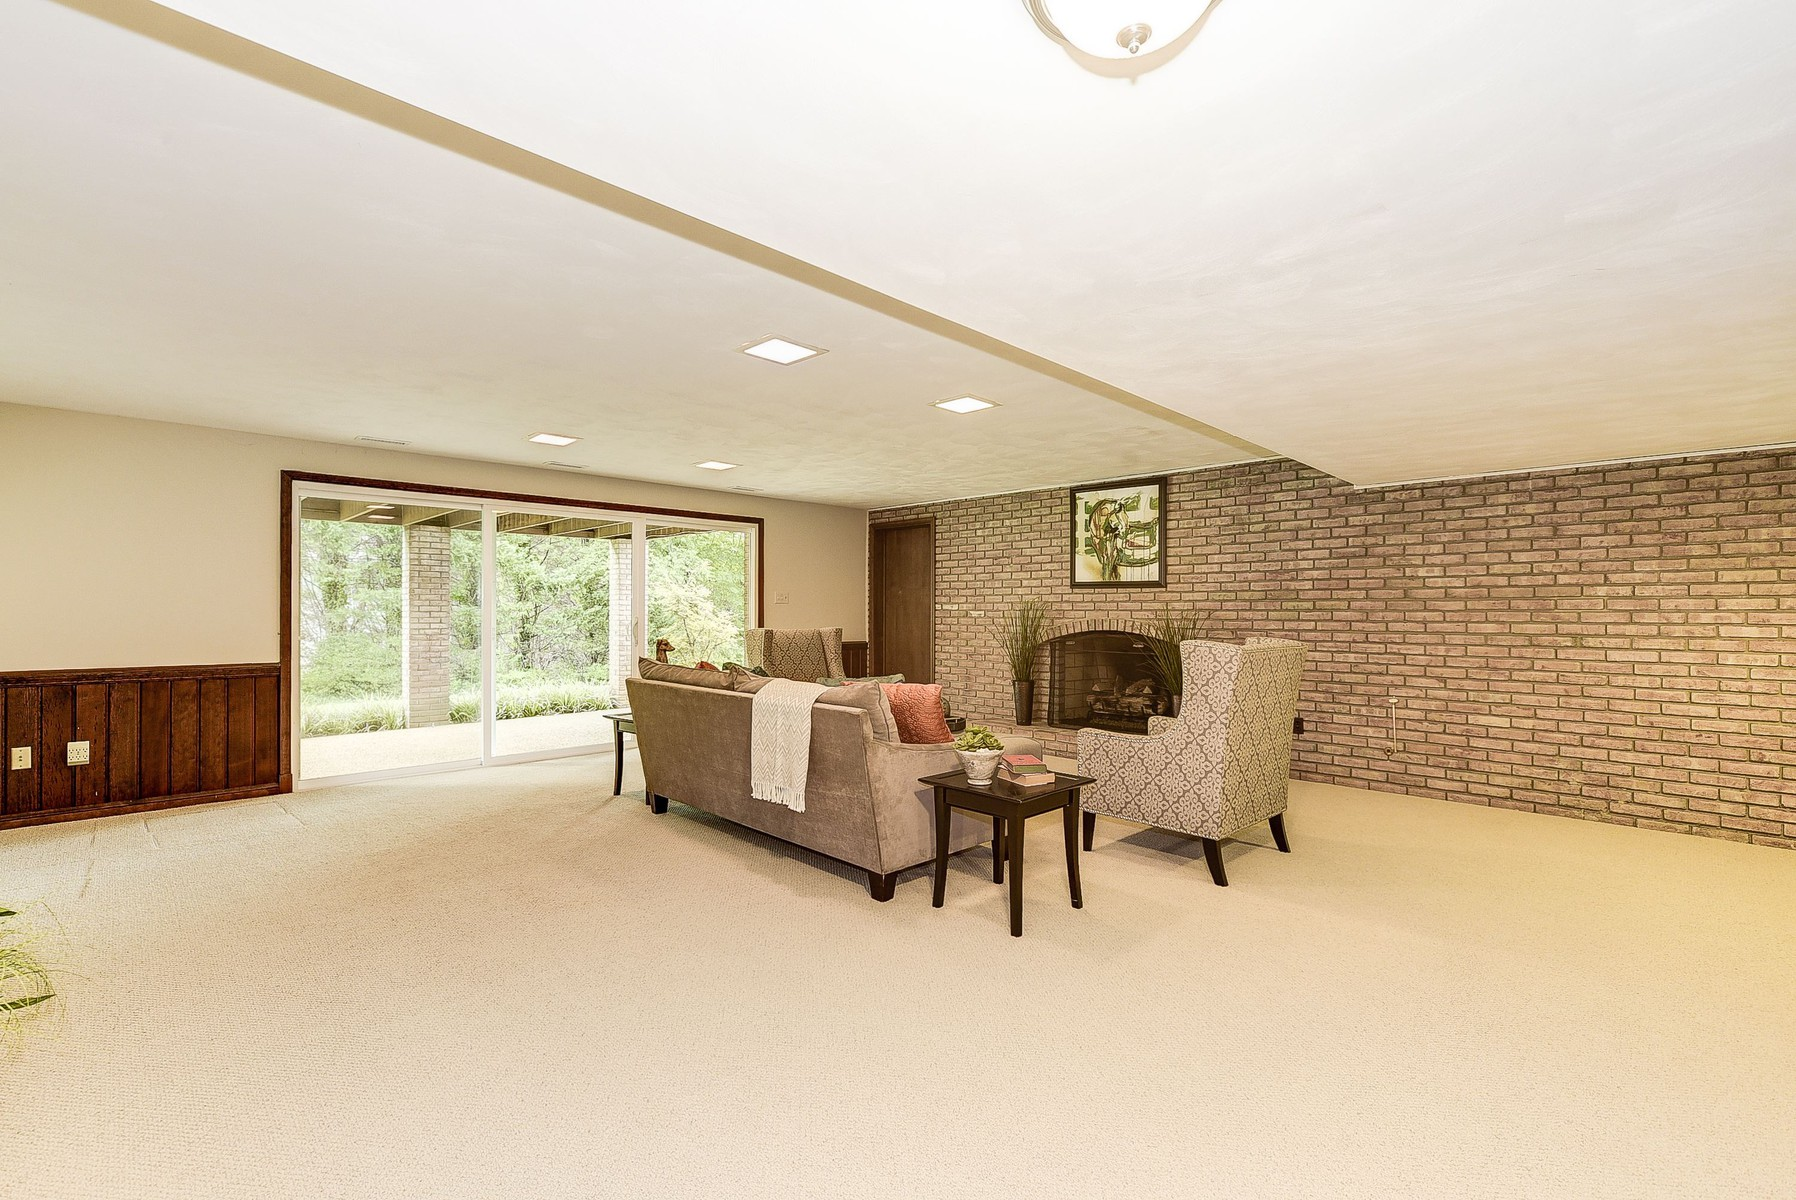 Additional photo for property listing at Evermay 1228 Perry William Dr McLean, Βιρτζινια 22101 Ηνωμενεσ Πολιτειεσ